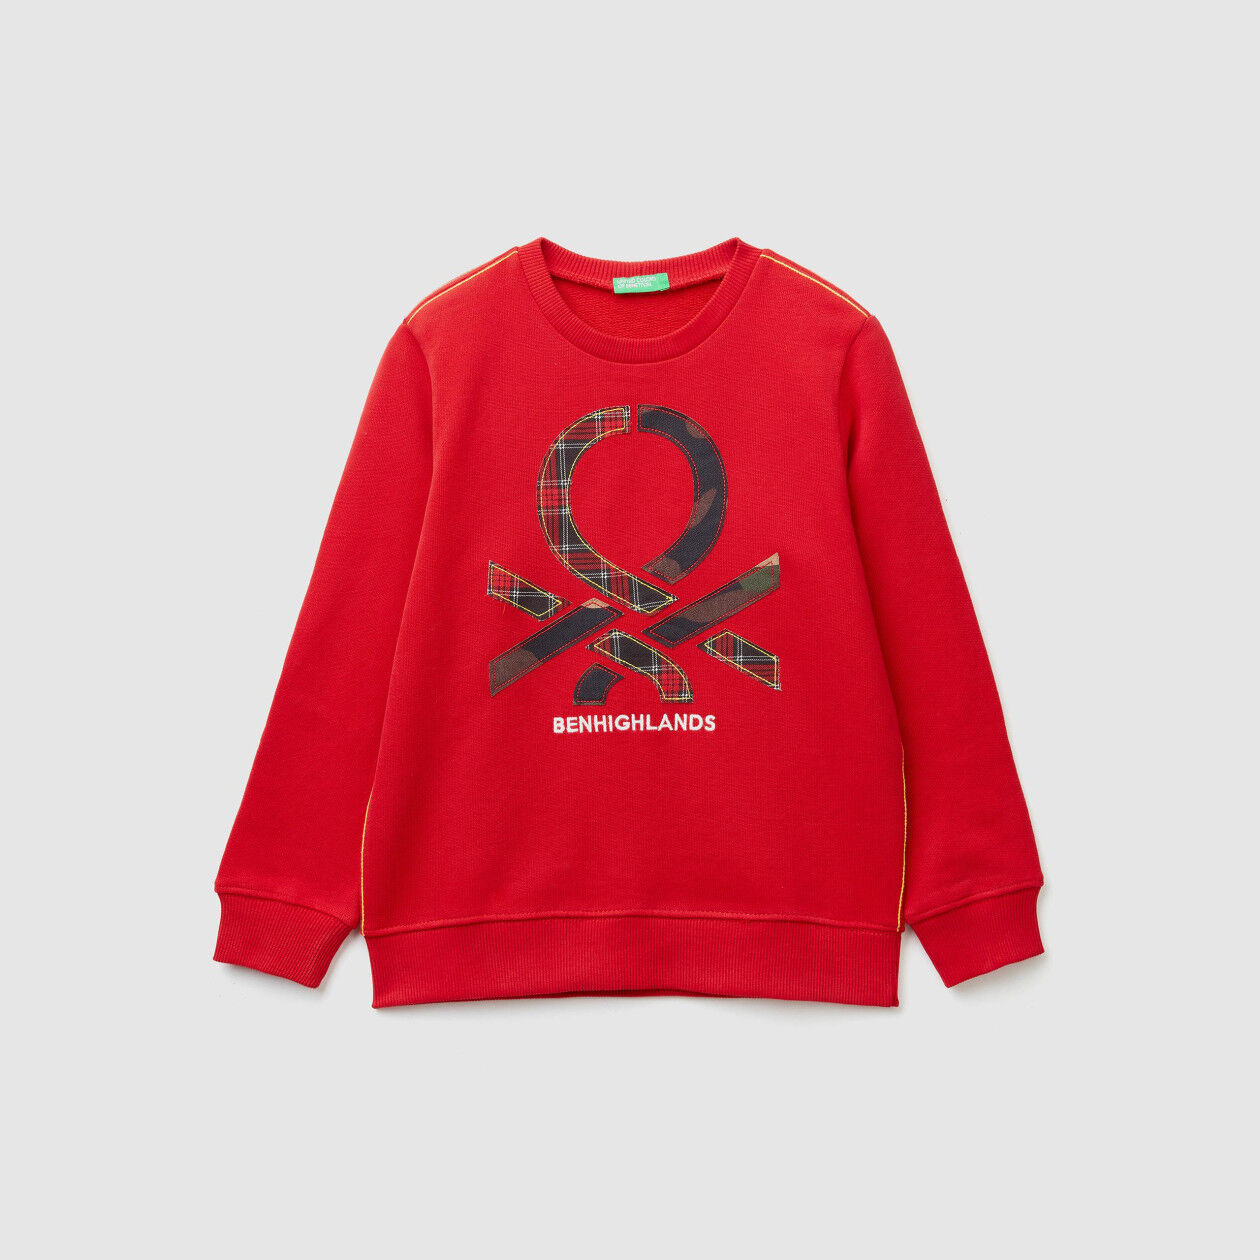 Sweatshirt with patches and embroidery